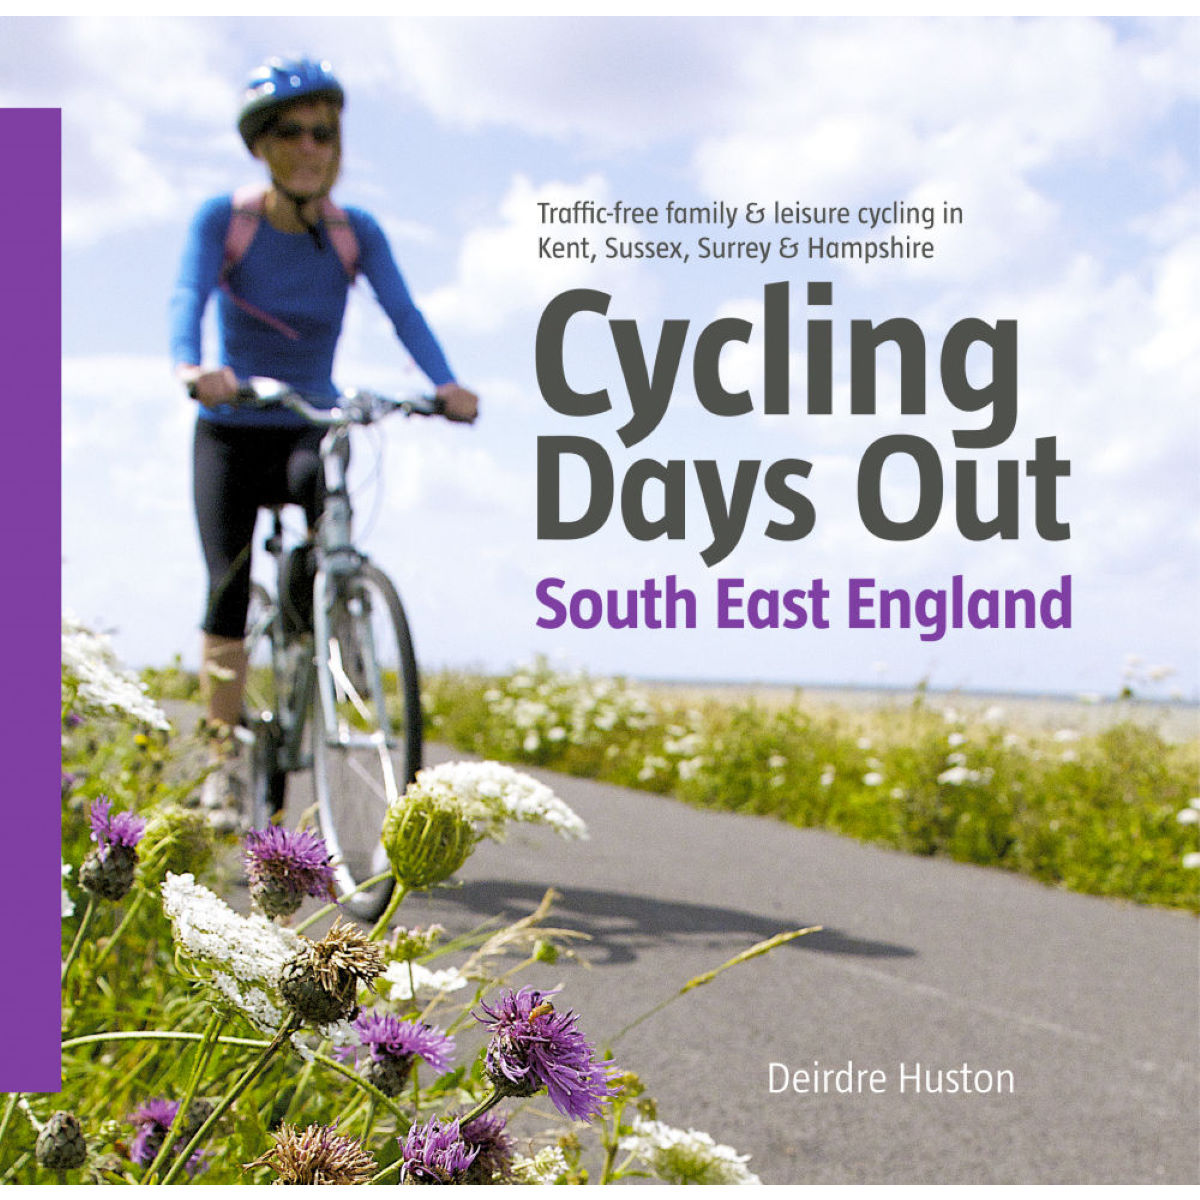 Image of Livre Cordee Cycling Days Out South East England (en anglais) | Livres